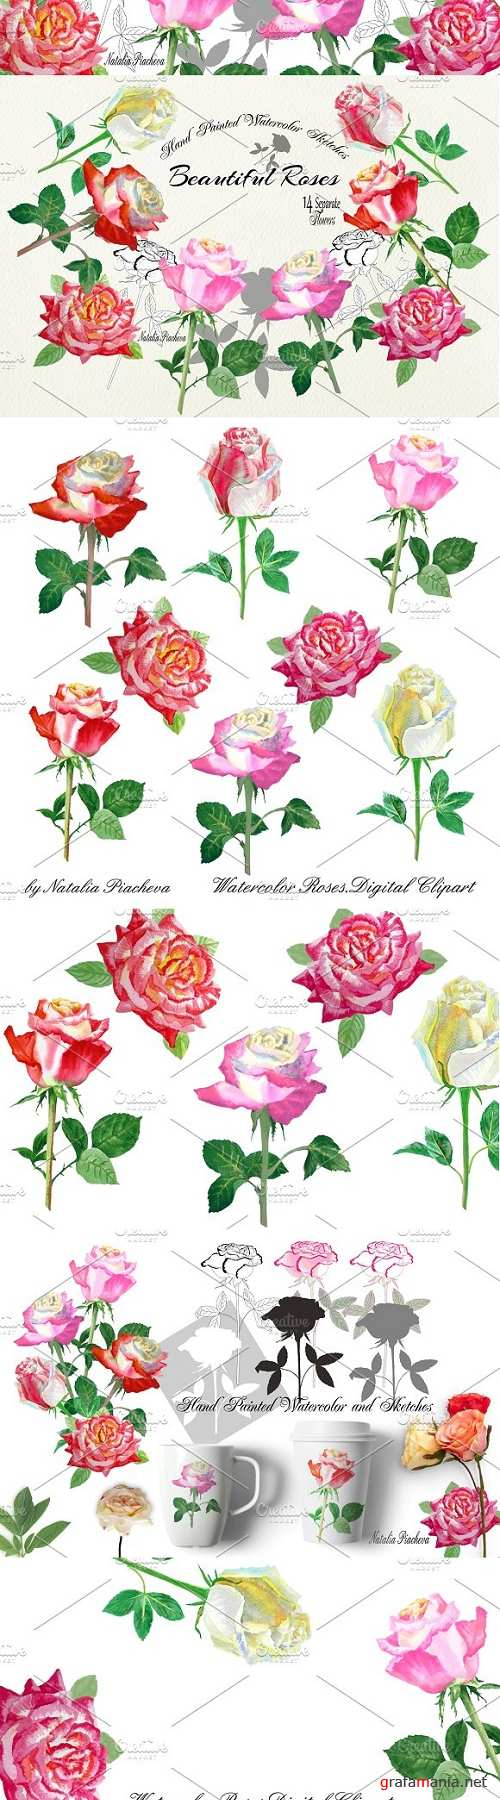 Watercolor Clipart with Roses - 2350502